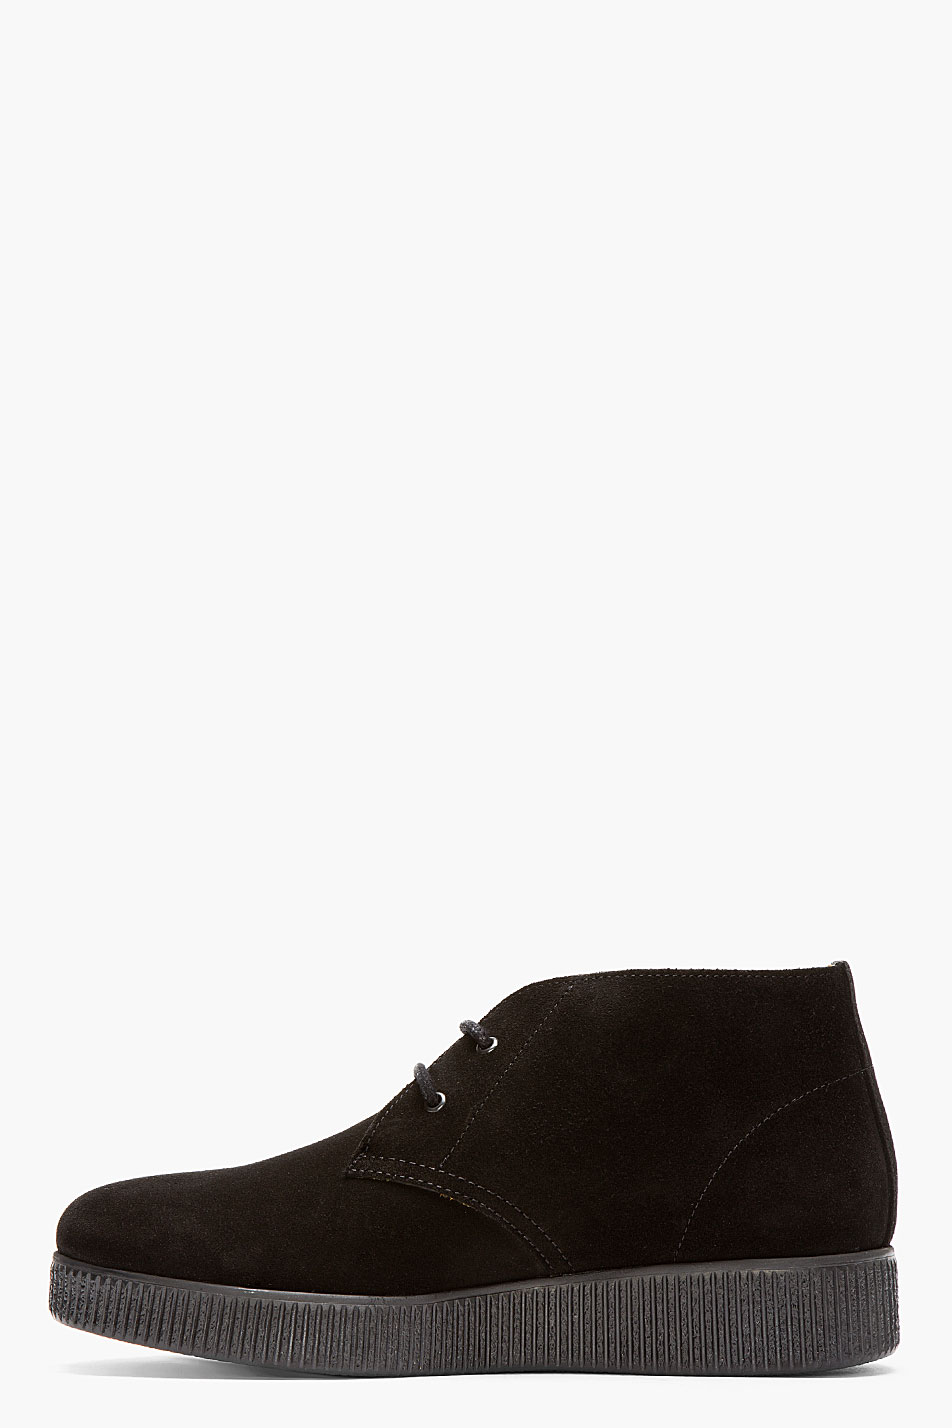 a p c black suede desert boots in black for lyst